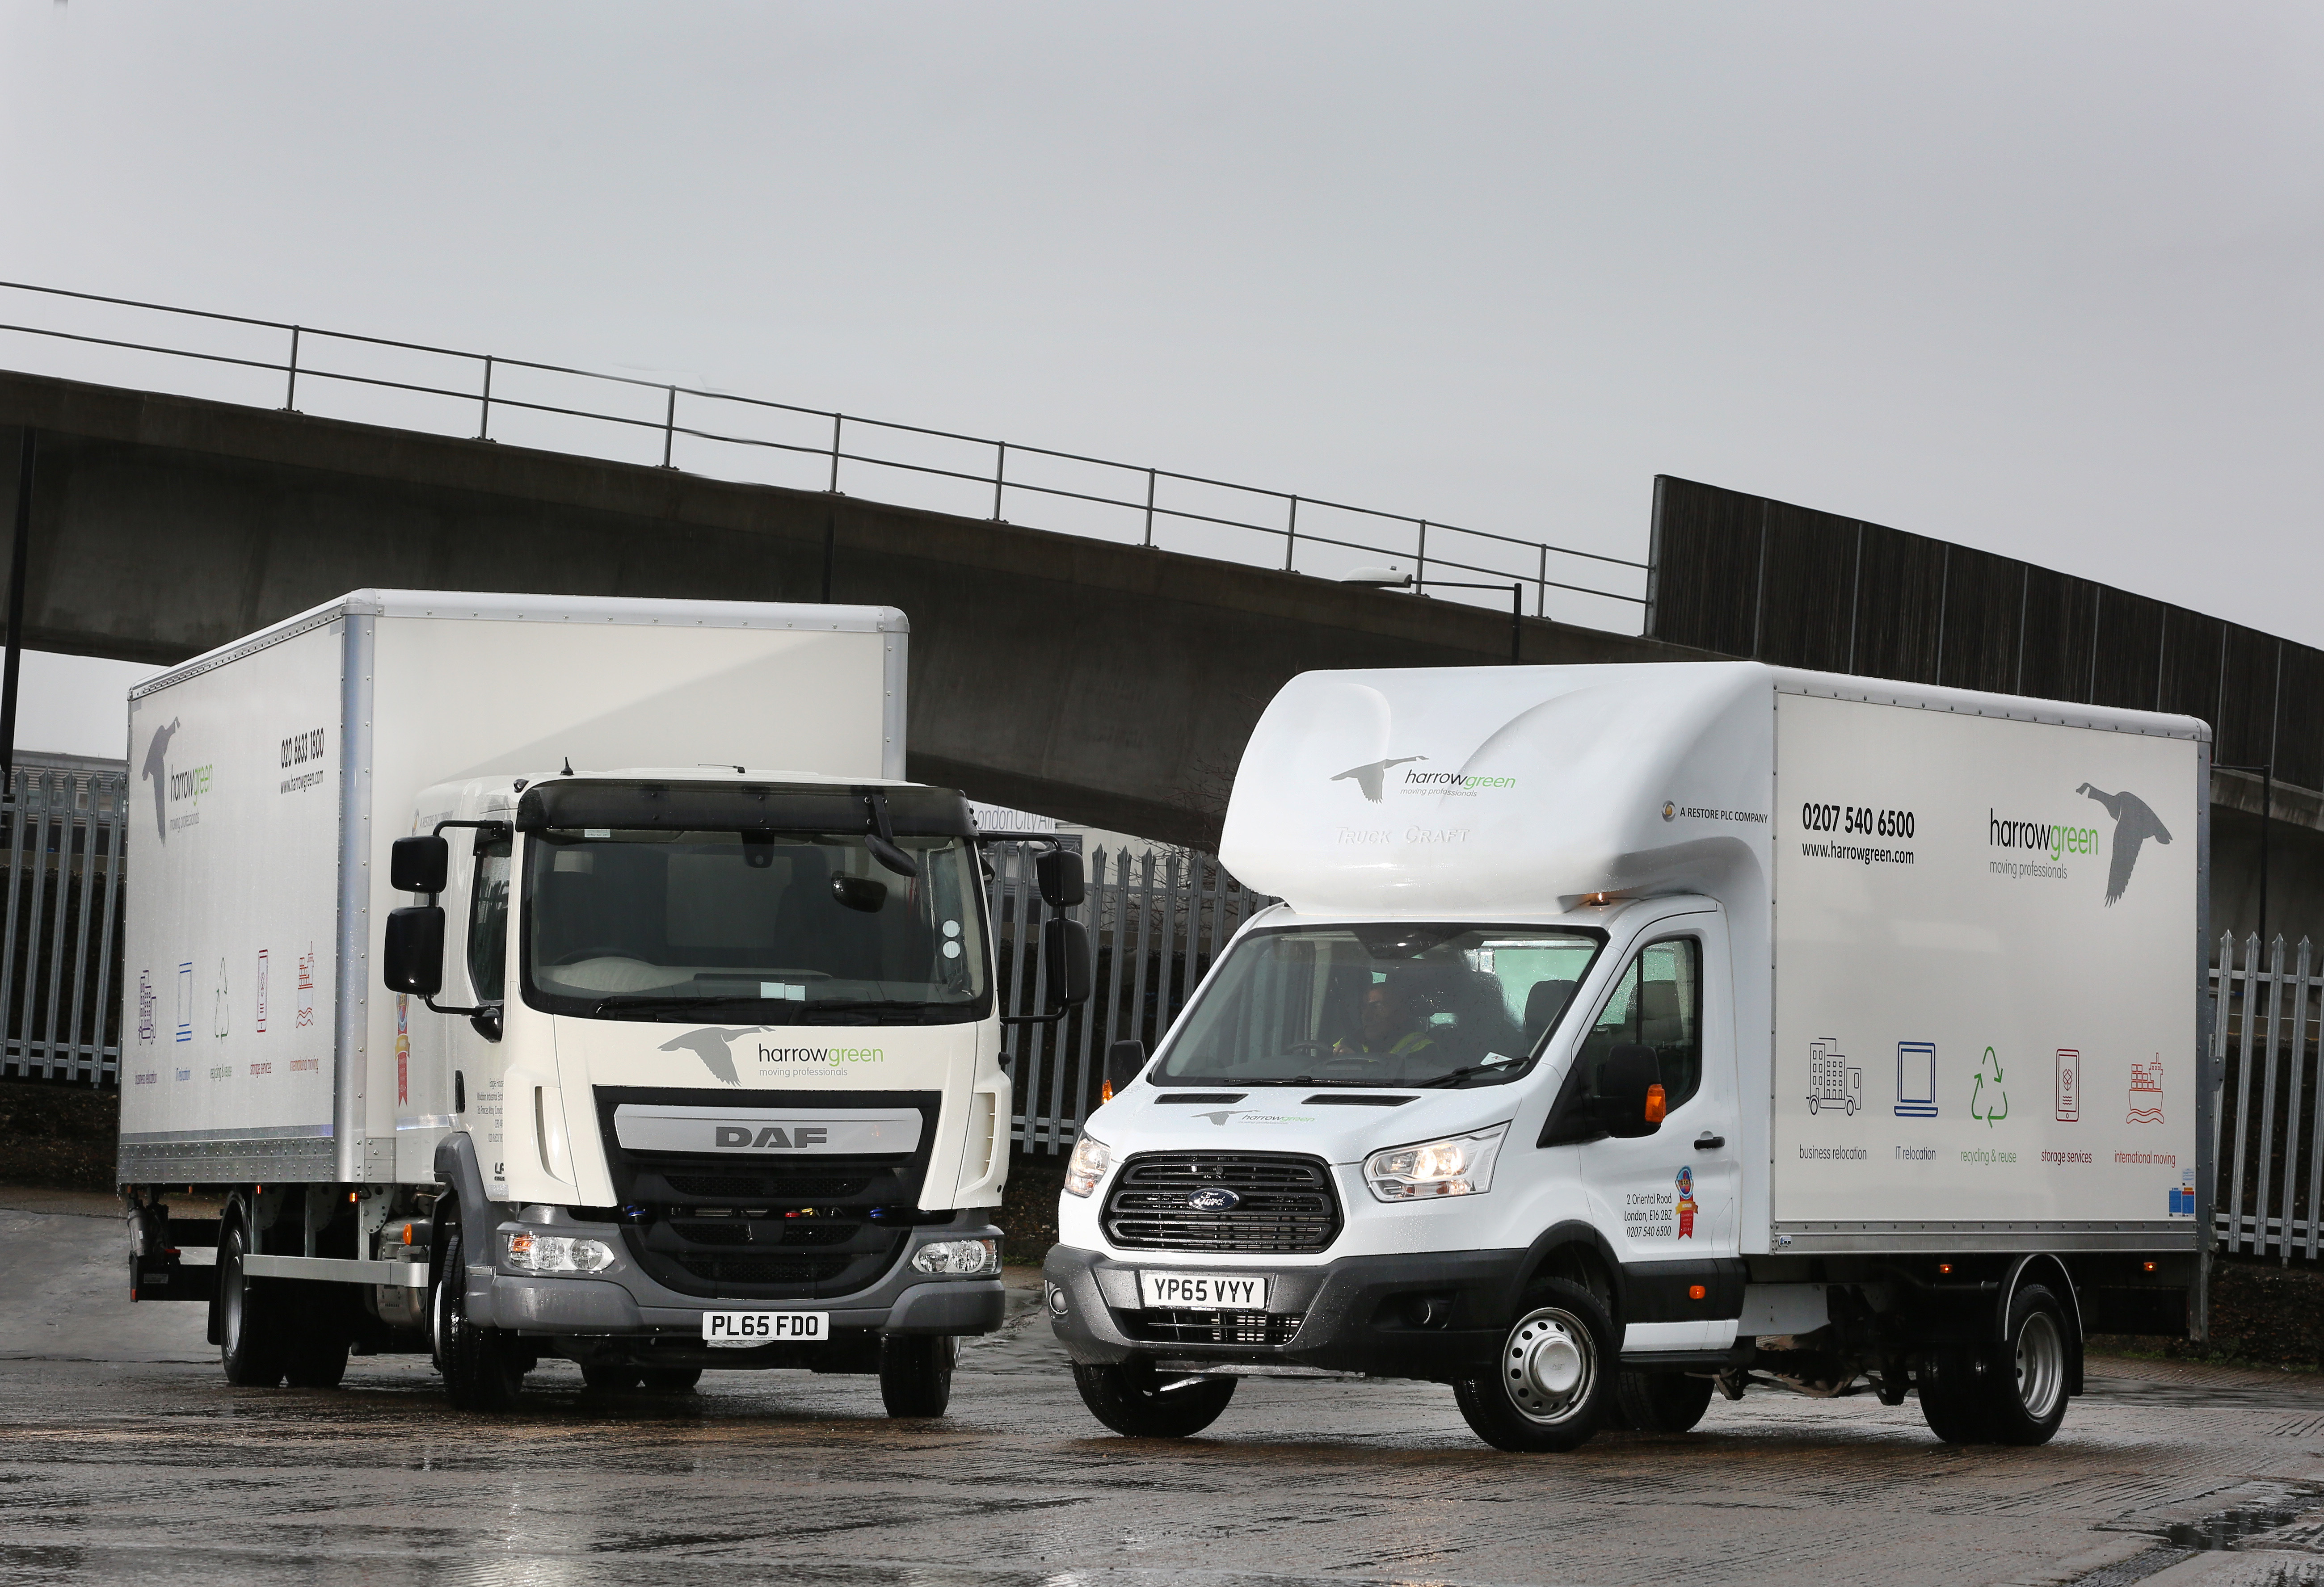 Asset Alliance 40-vehicle contract hire deal included three 12-tonne DAF LF180s and 22 Ford Transits as part of the full service contract hire deal.